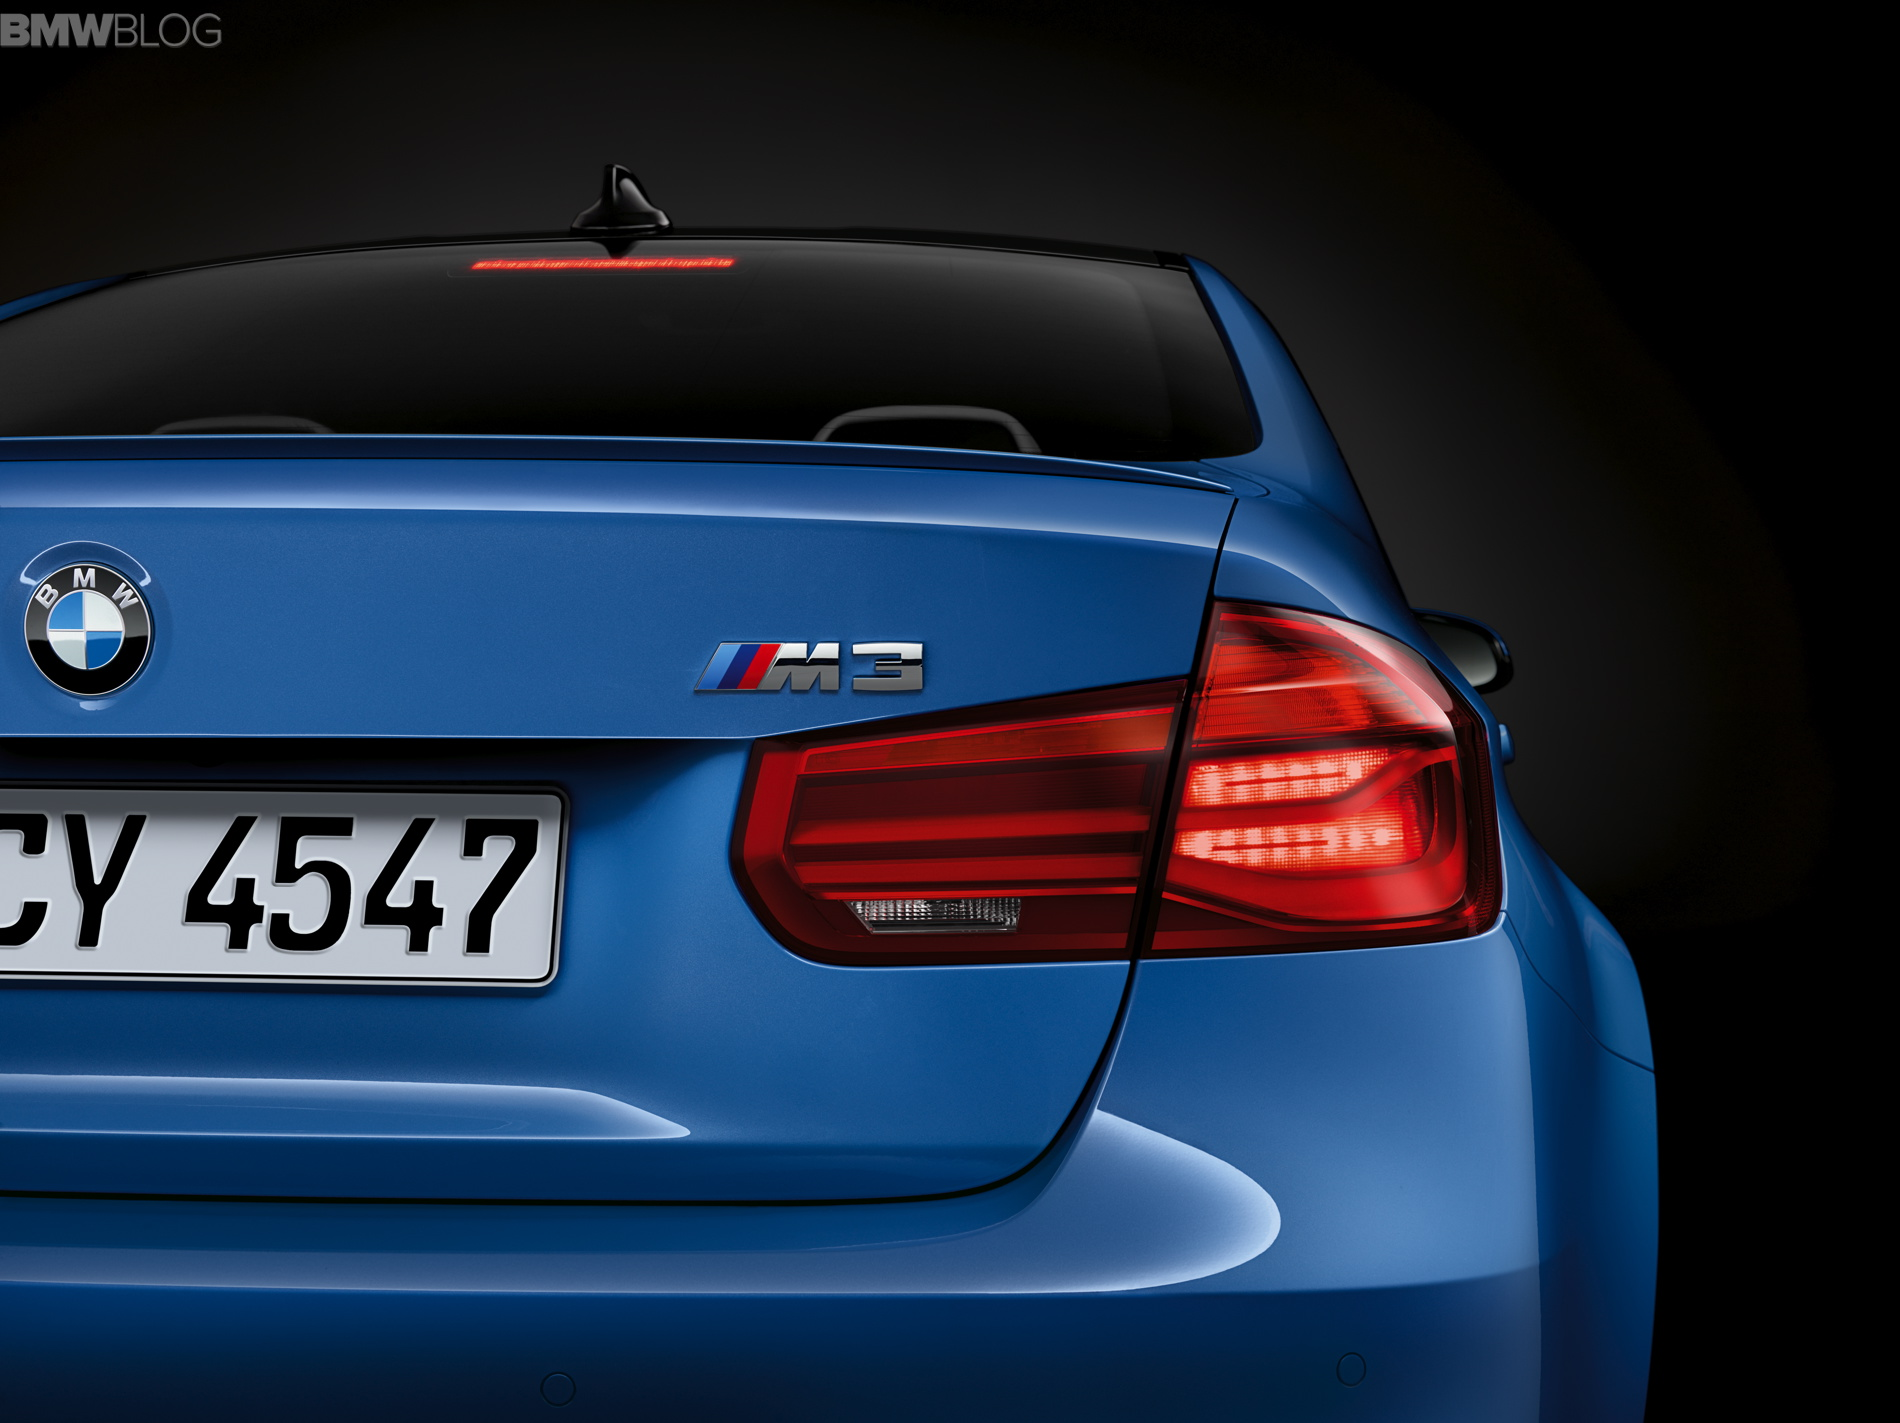 2016 bmw m3 facelift images 06